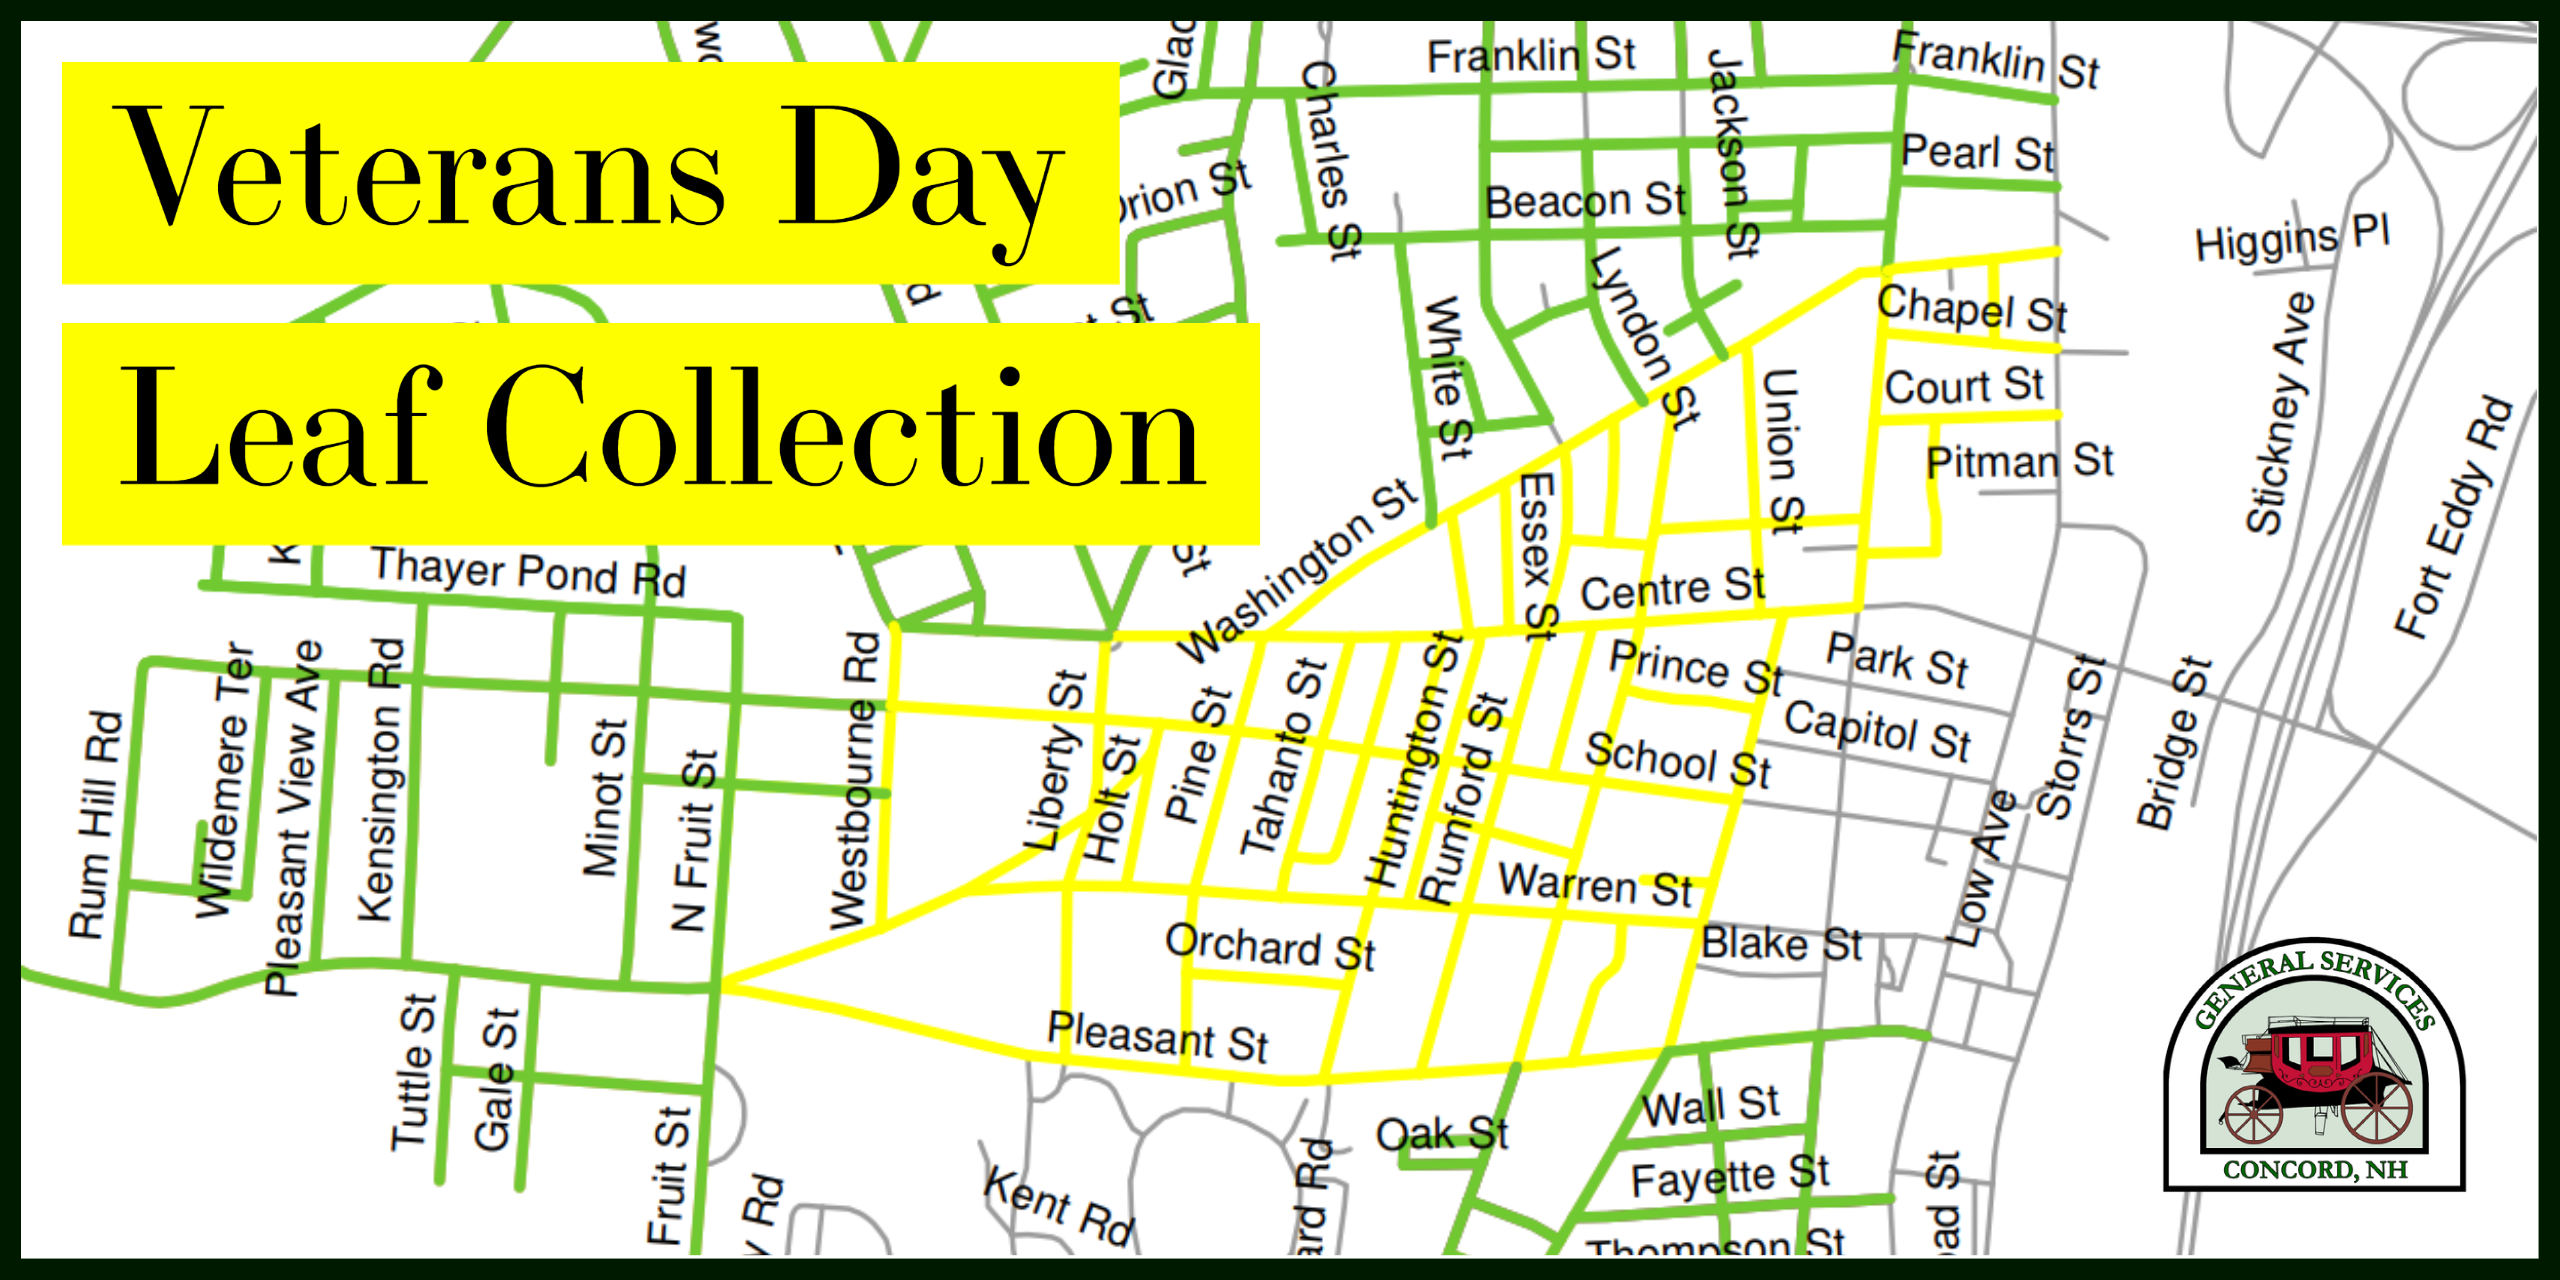 Veterans Day Leaf Collection Map